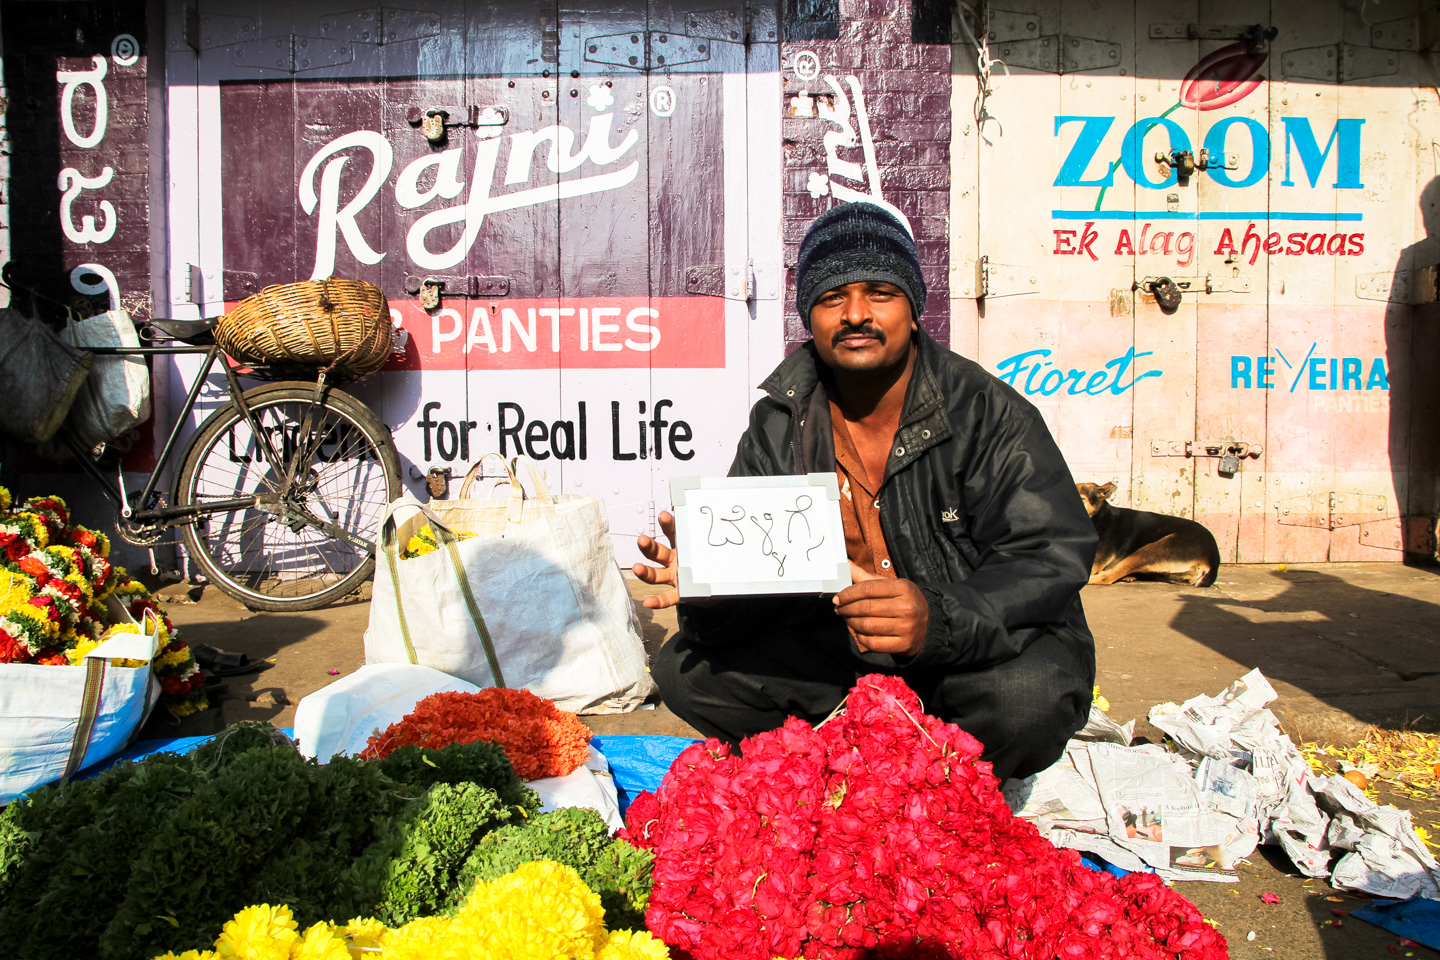 Raj has been selling flowers in Bangalore's City Market, or KR Market, for ten years. He drinks chai every morning while setting up his stand.